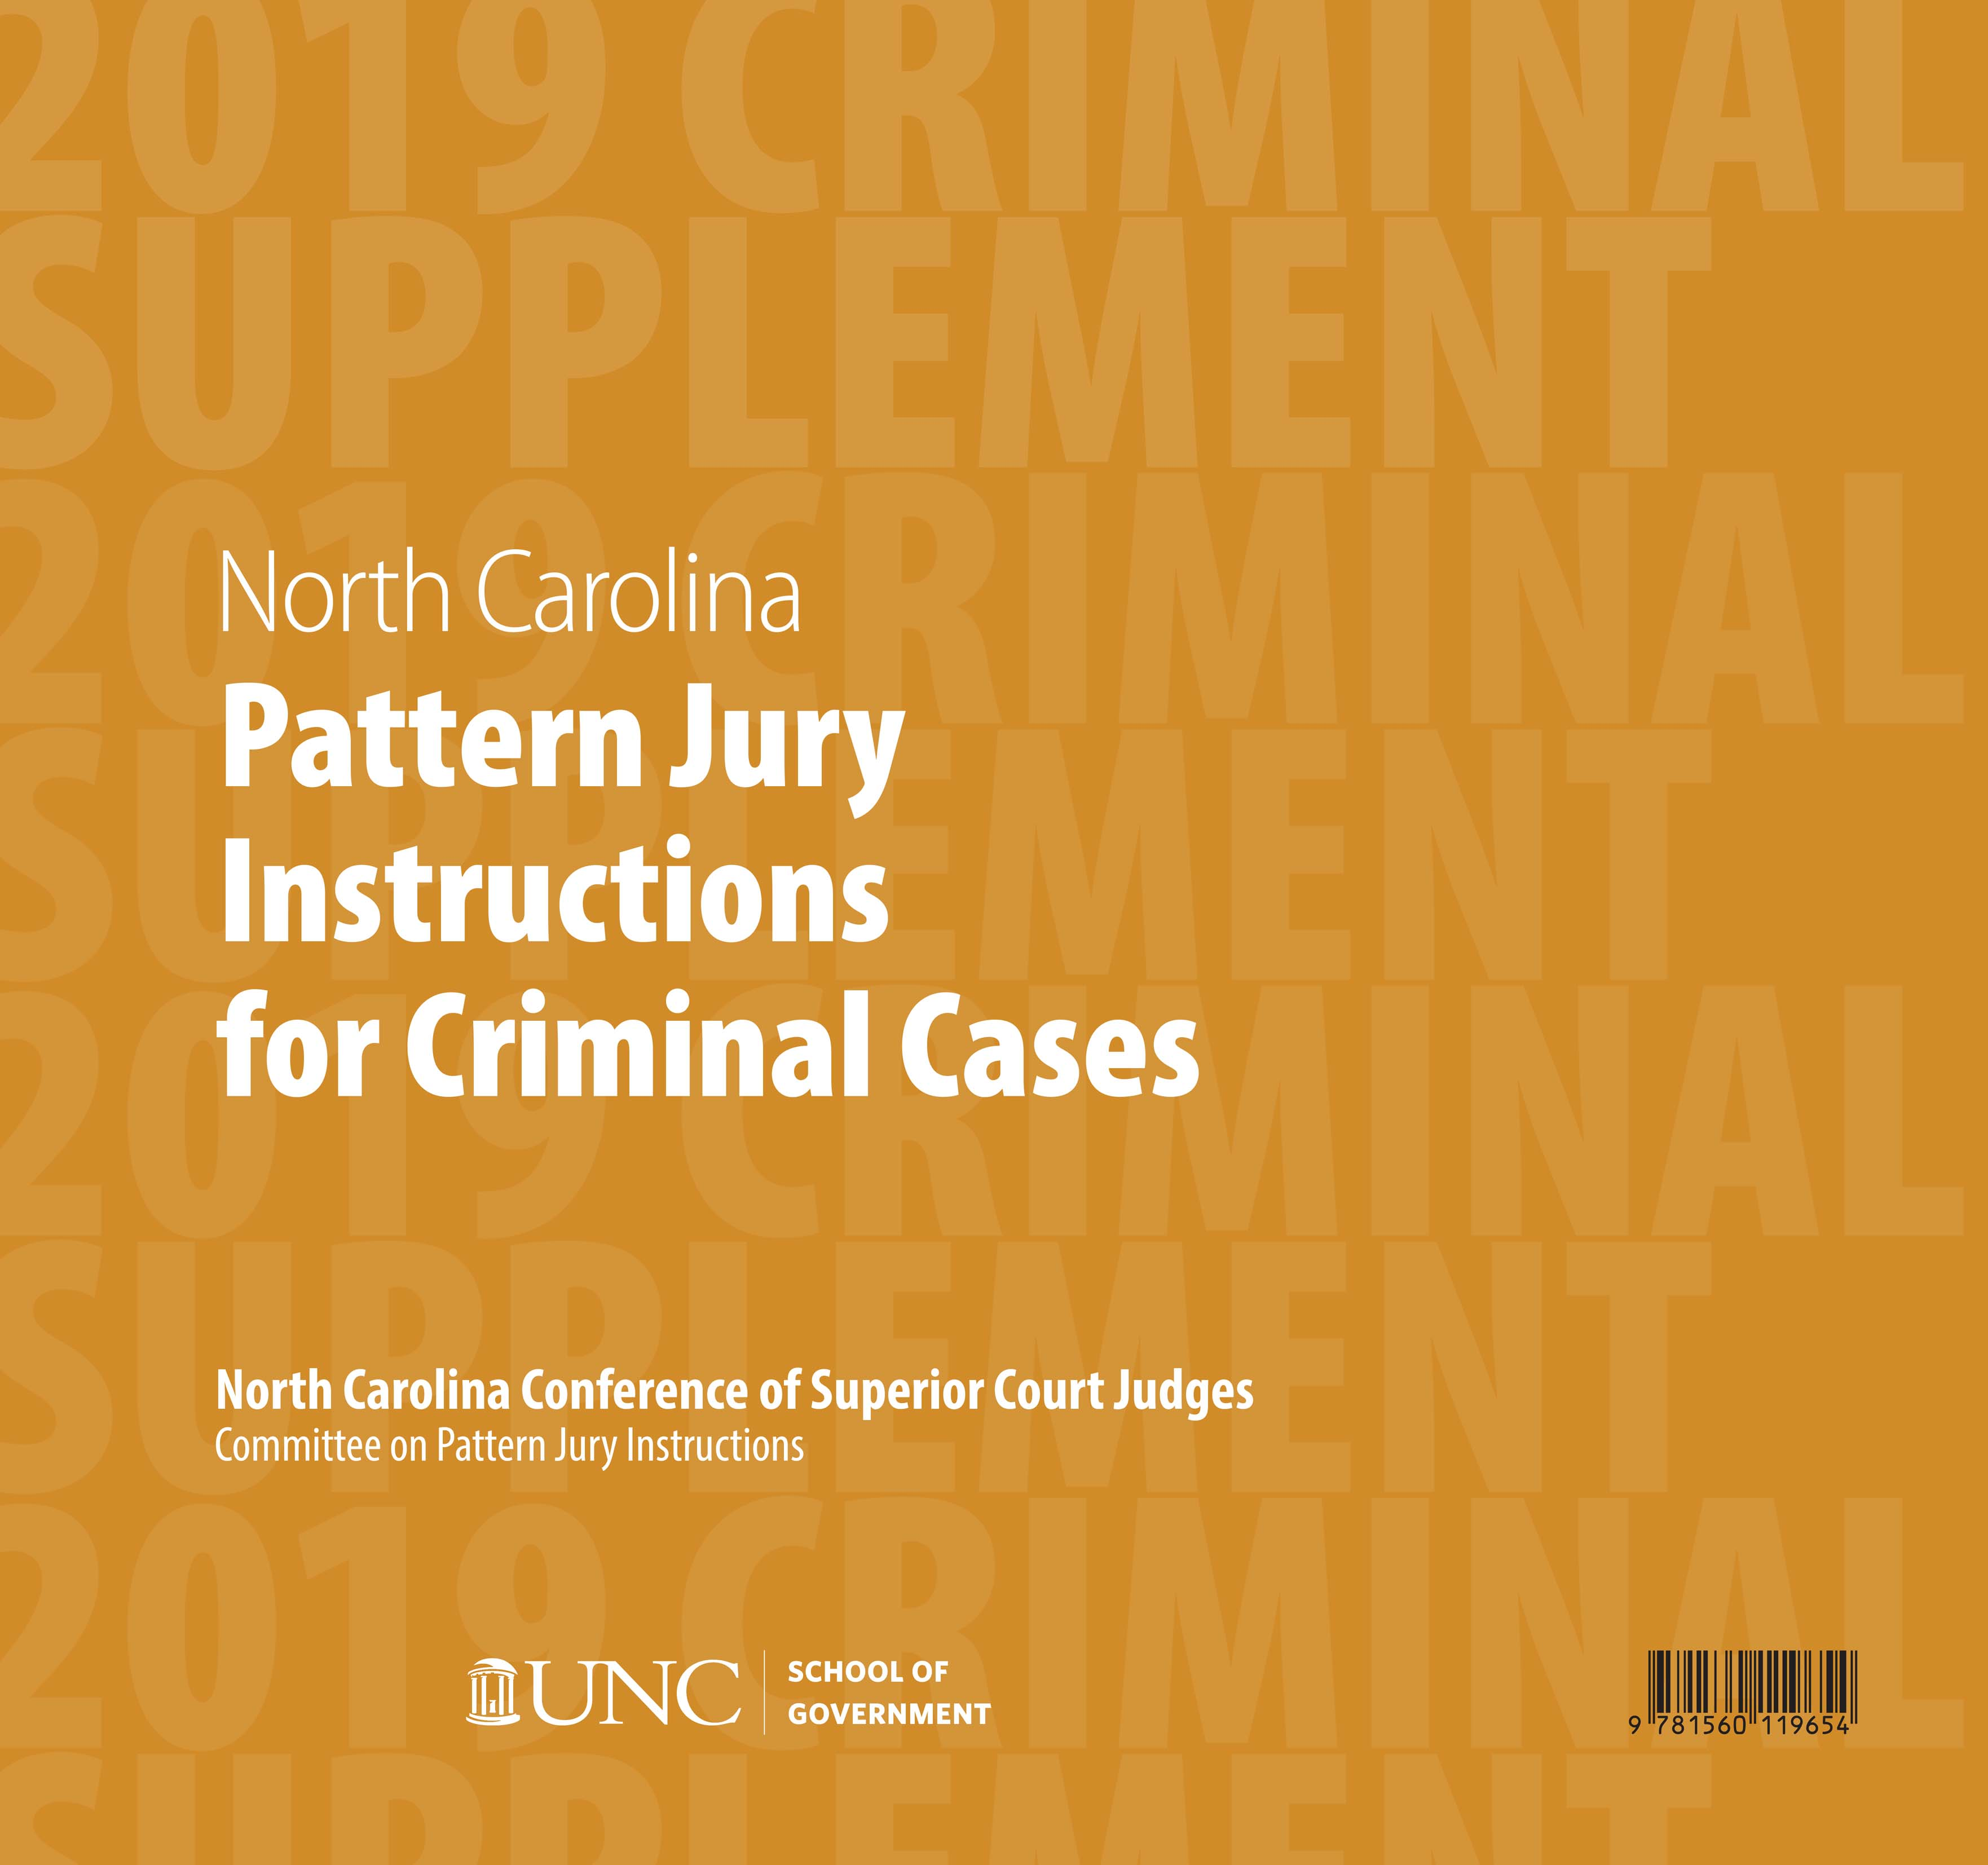 Cover image for June 2019 Supplement to North Carolina Pattern Jury Instructions for Criminal Cases